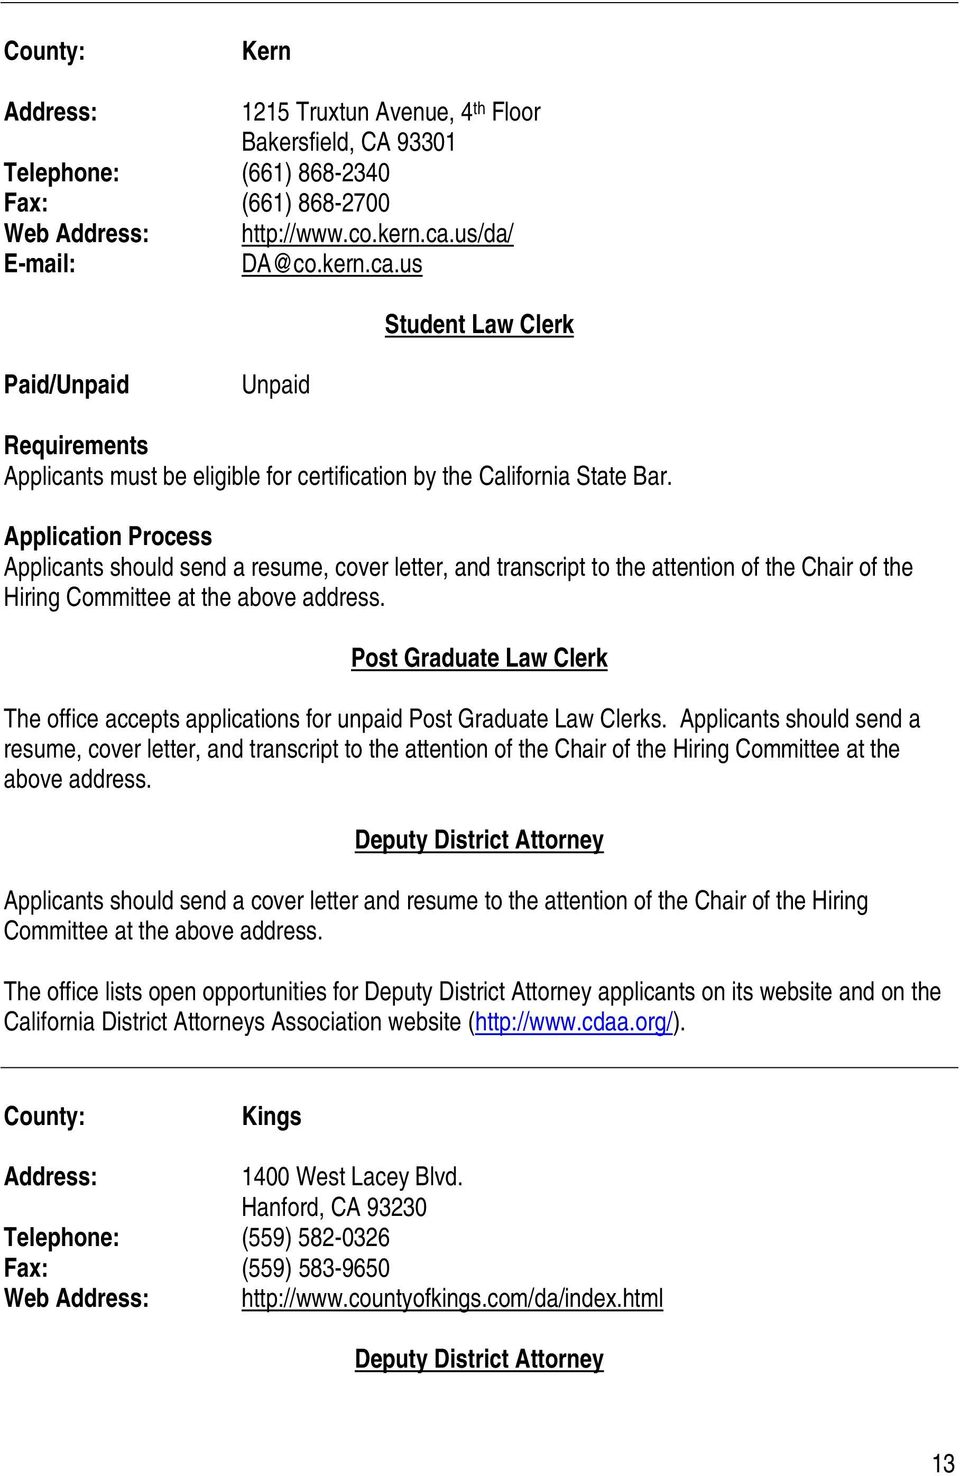 HIRING PRACTICES CALIFORNIA DISTRICT ATTORNEY OFFICES. UC ...